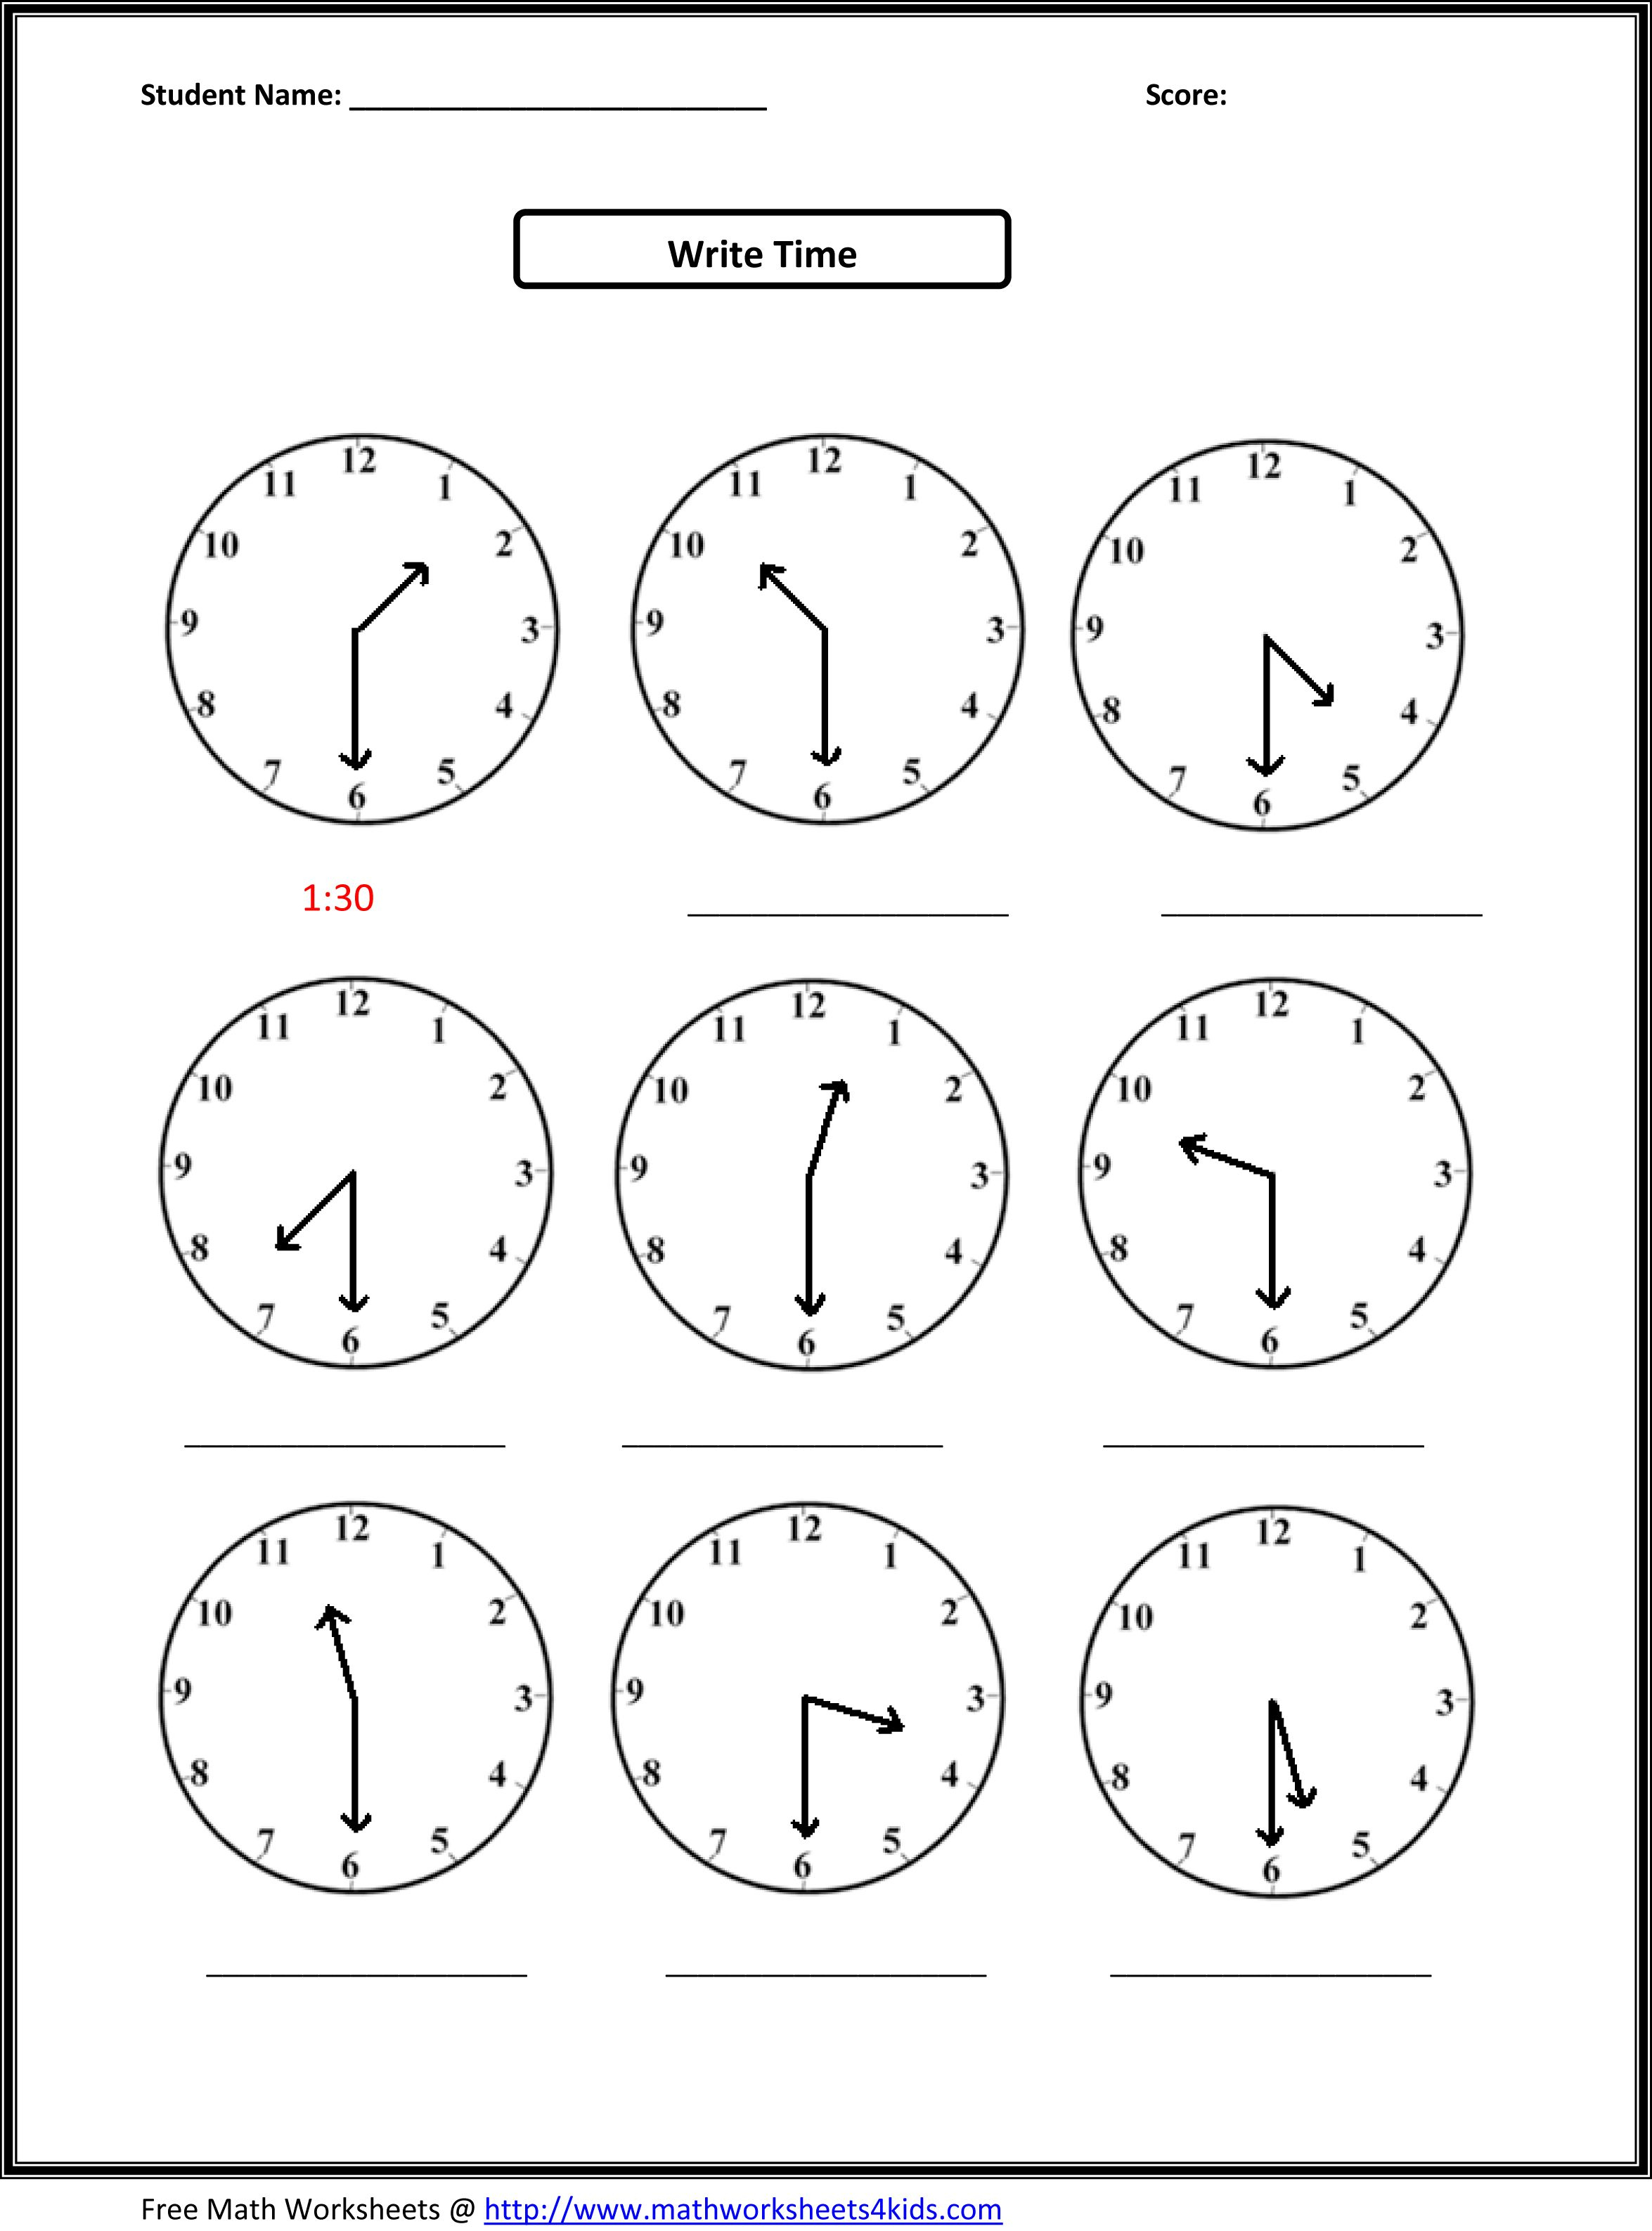 Worksheets For Kids | Go To Top Place Value Worksheets 2Nd Grade - Free Printable Telling Time Worksheets For 1St Grade